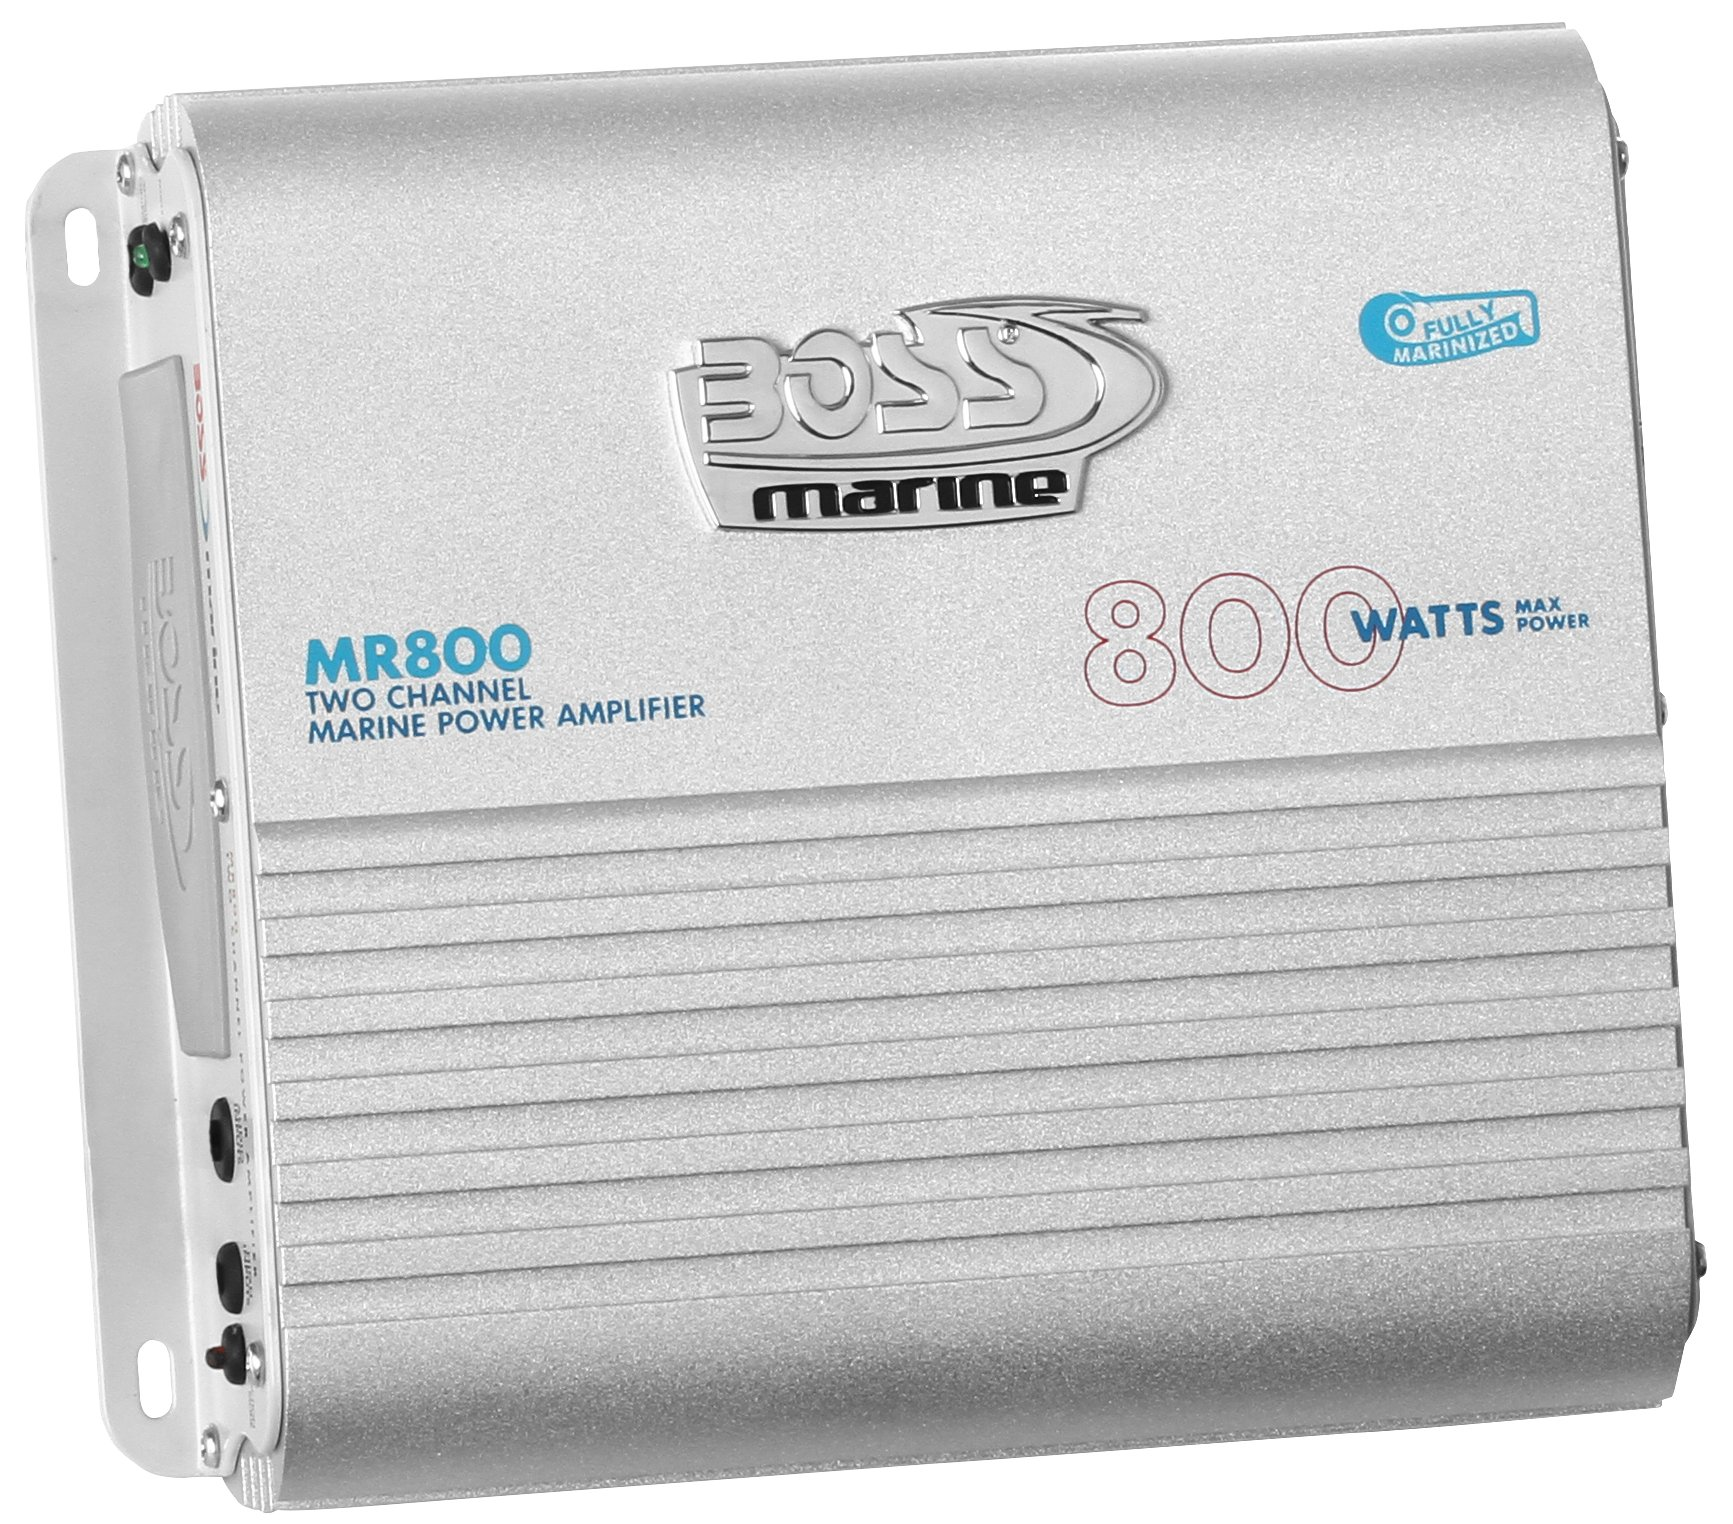 BOSS Audio MR800 Marine Grade 800 Watt, 2 Channel, 2/4 Ohm Stable Class A/B, Full Range, Bridgeable, MOSFET Power Supply Amplifier with Remote Subwoofer Control